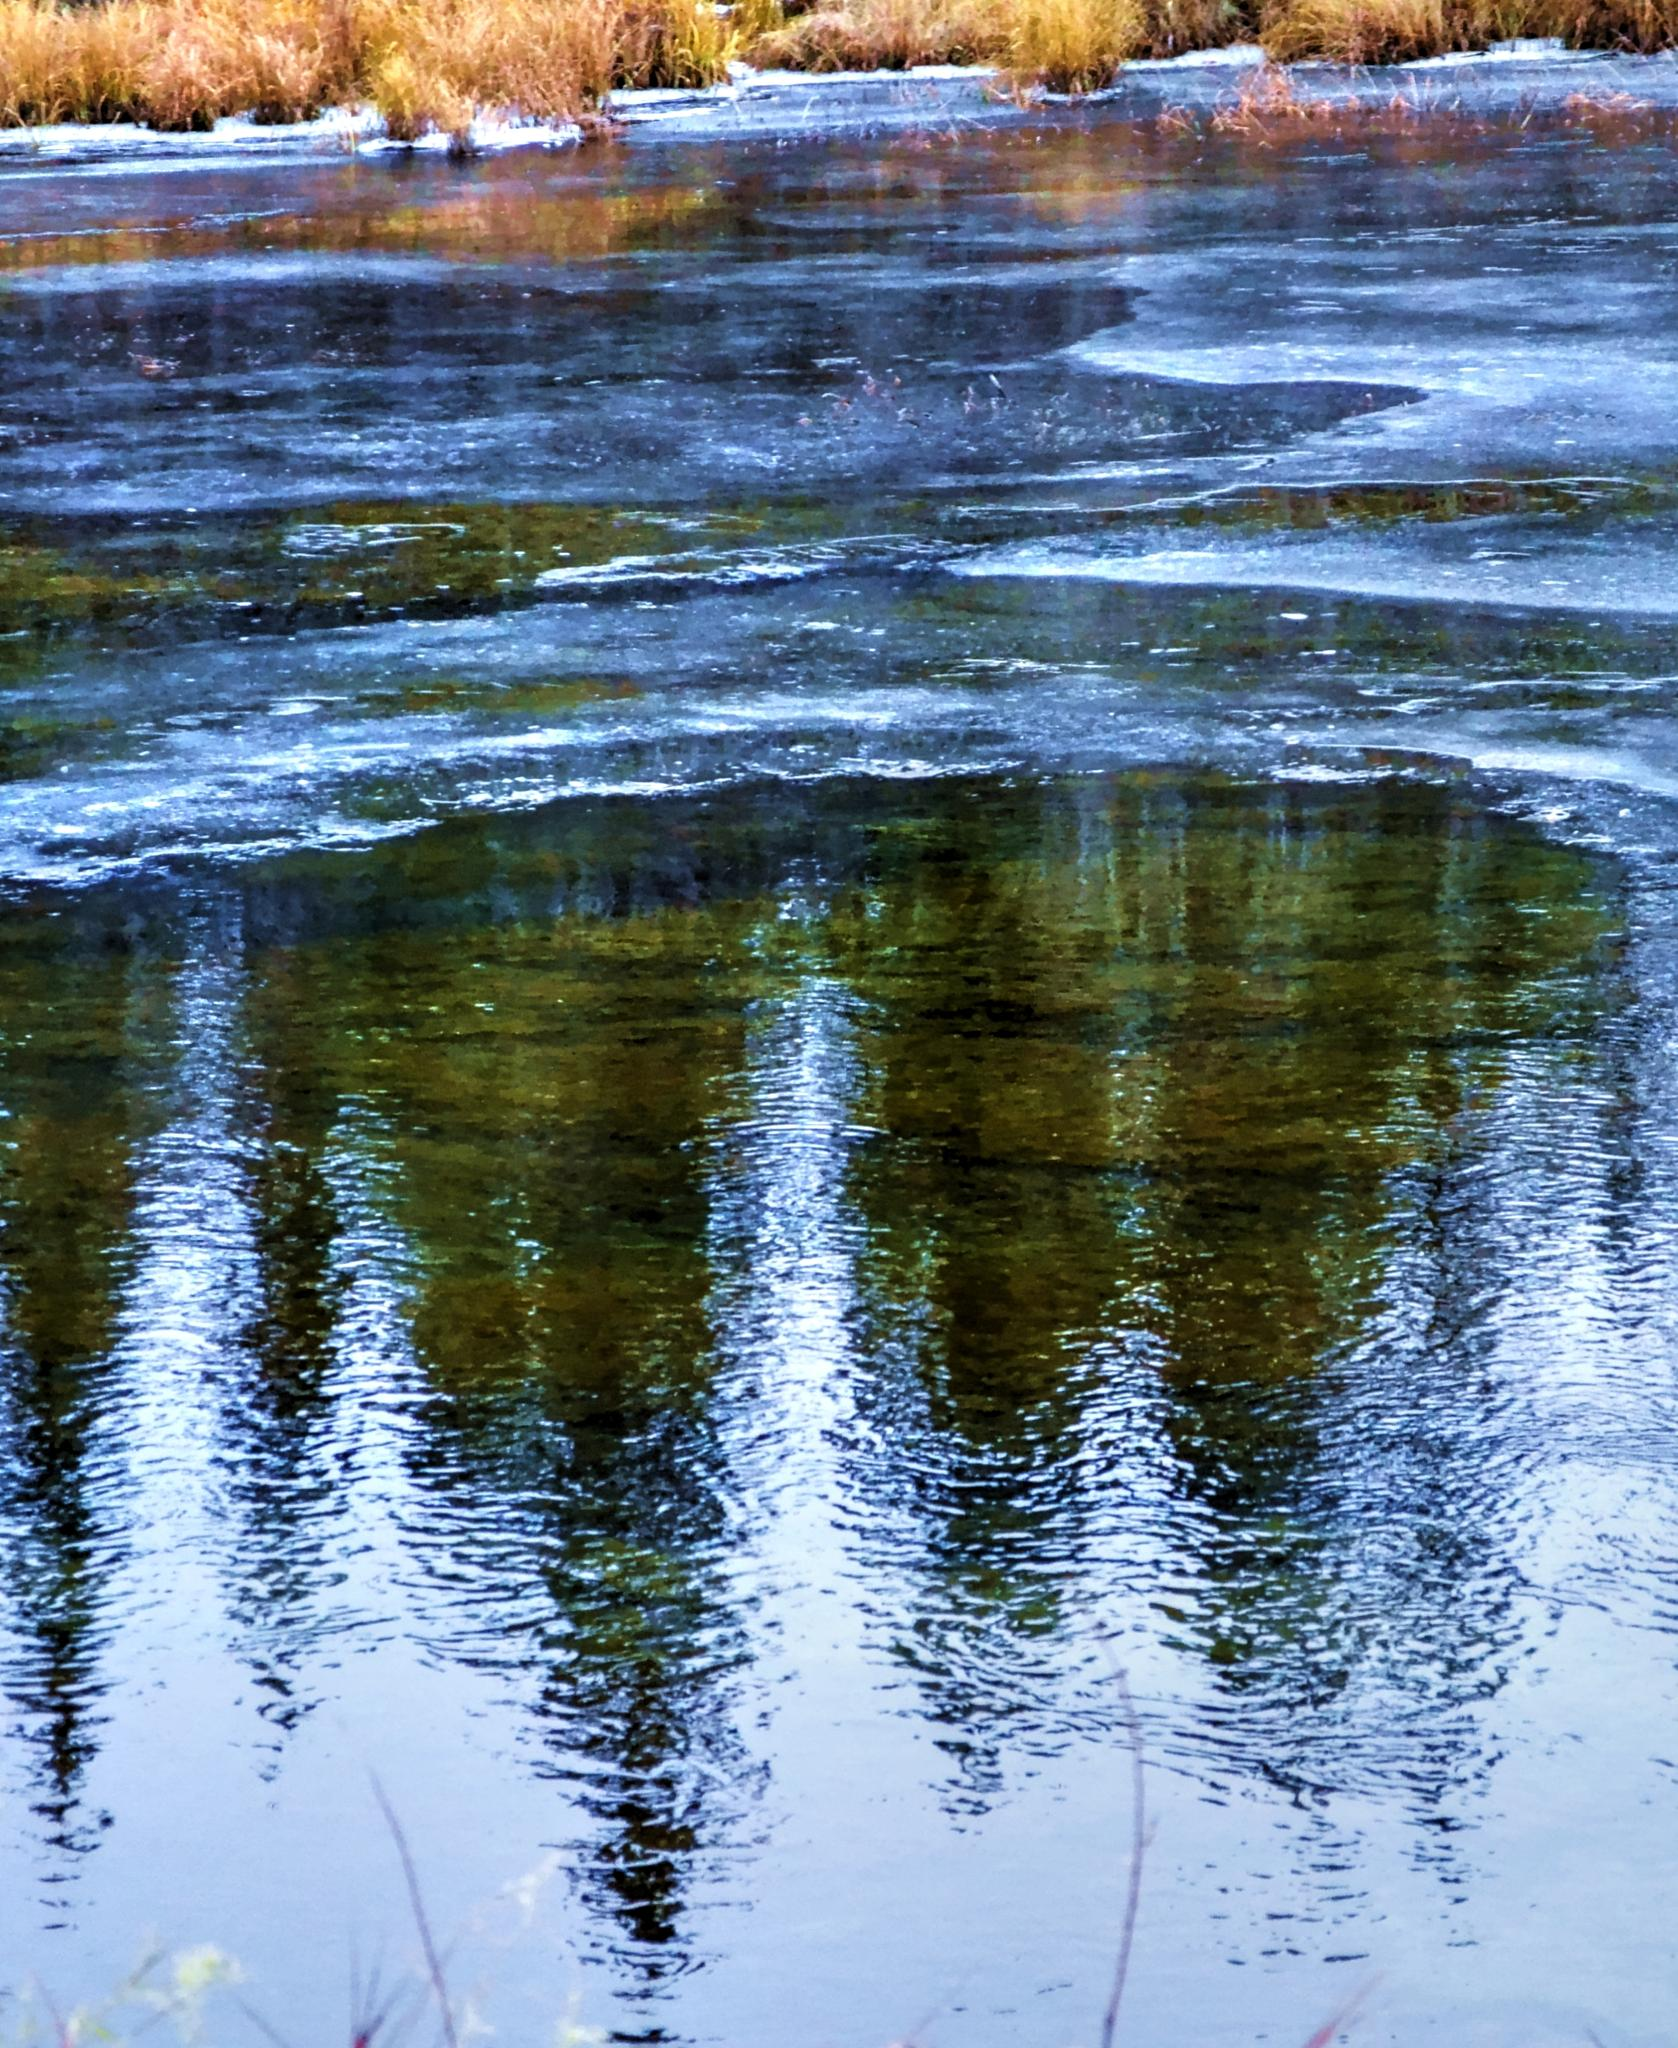 Icy Reflections of Spruce by ghost